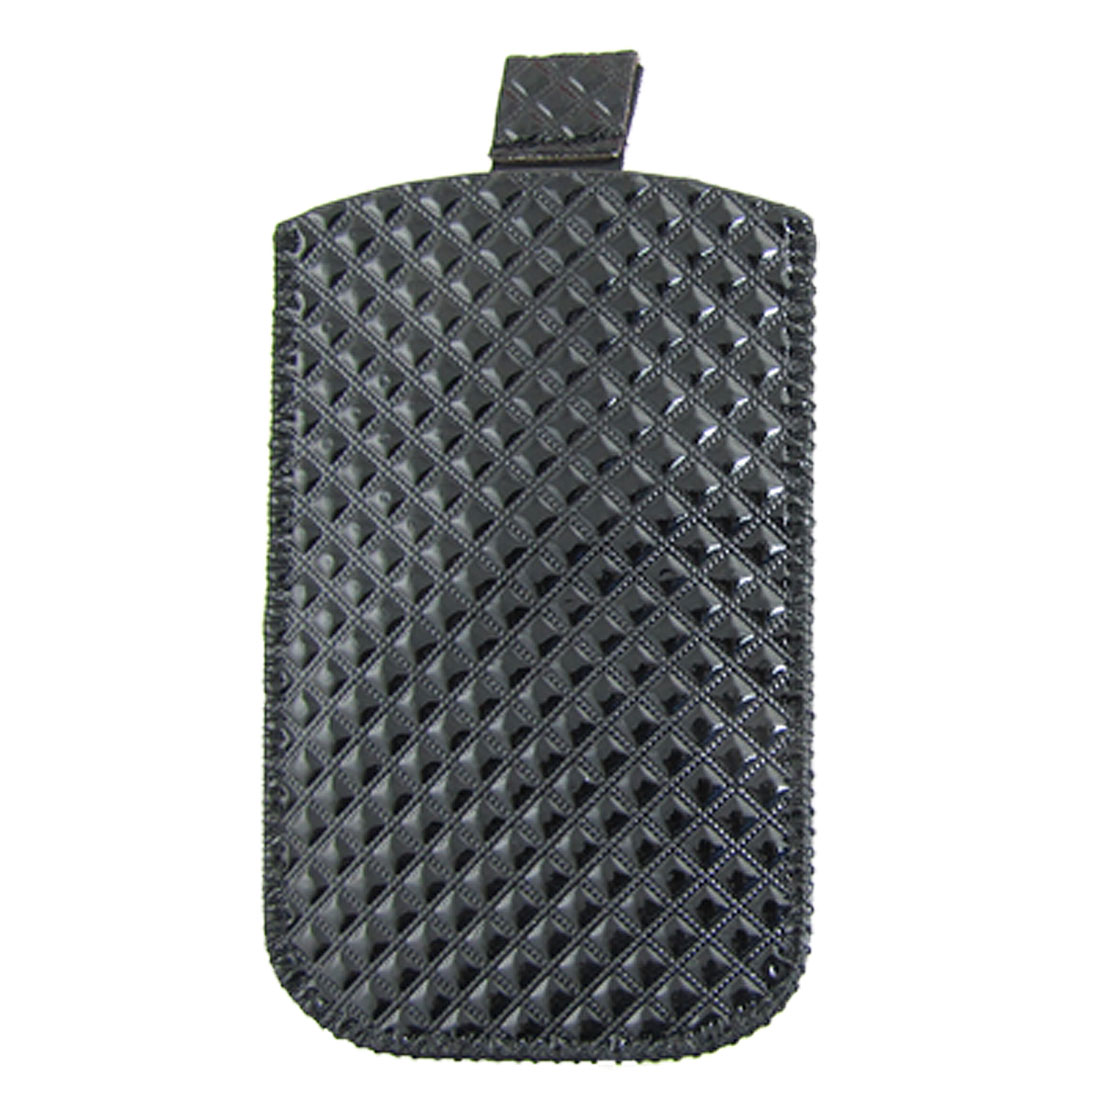 Grid Textured Black Faux Leather Pull Up Pouch for iPhone 4 4G